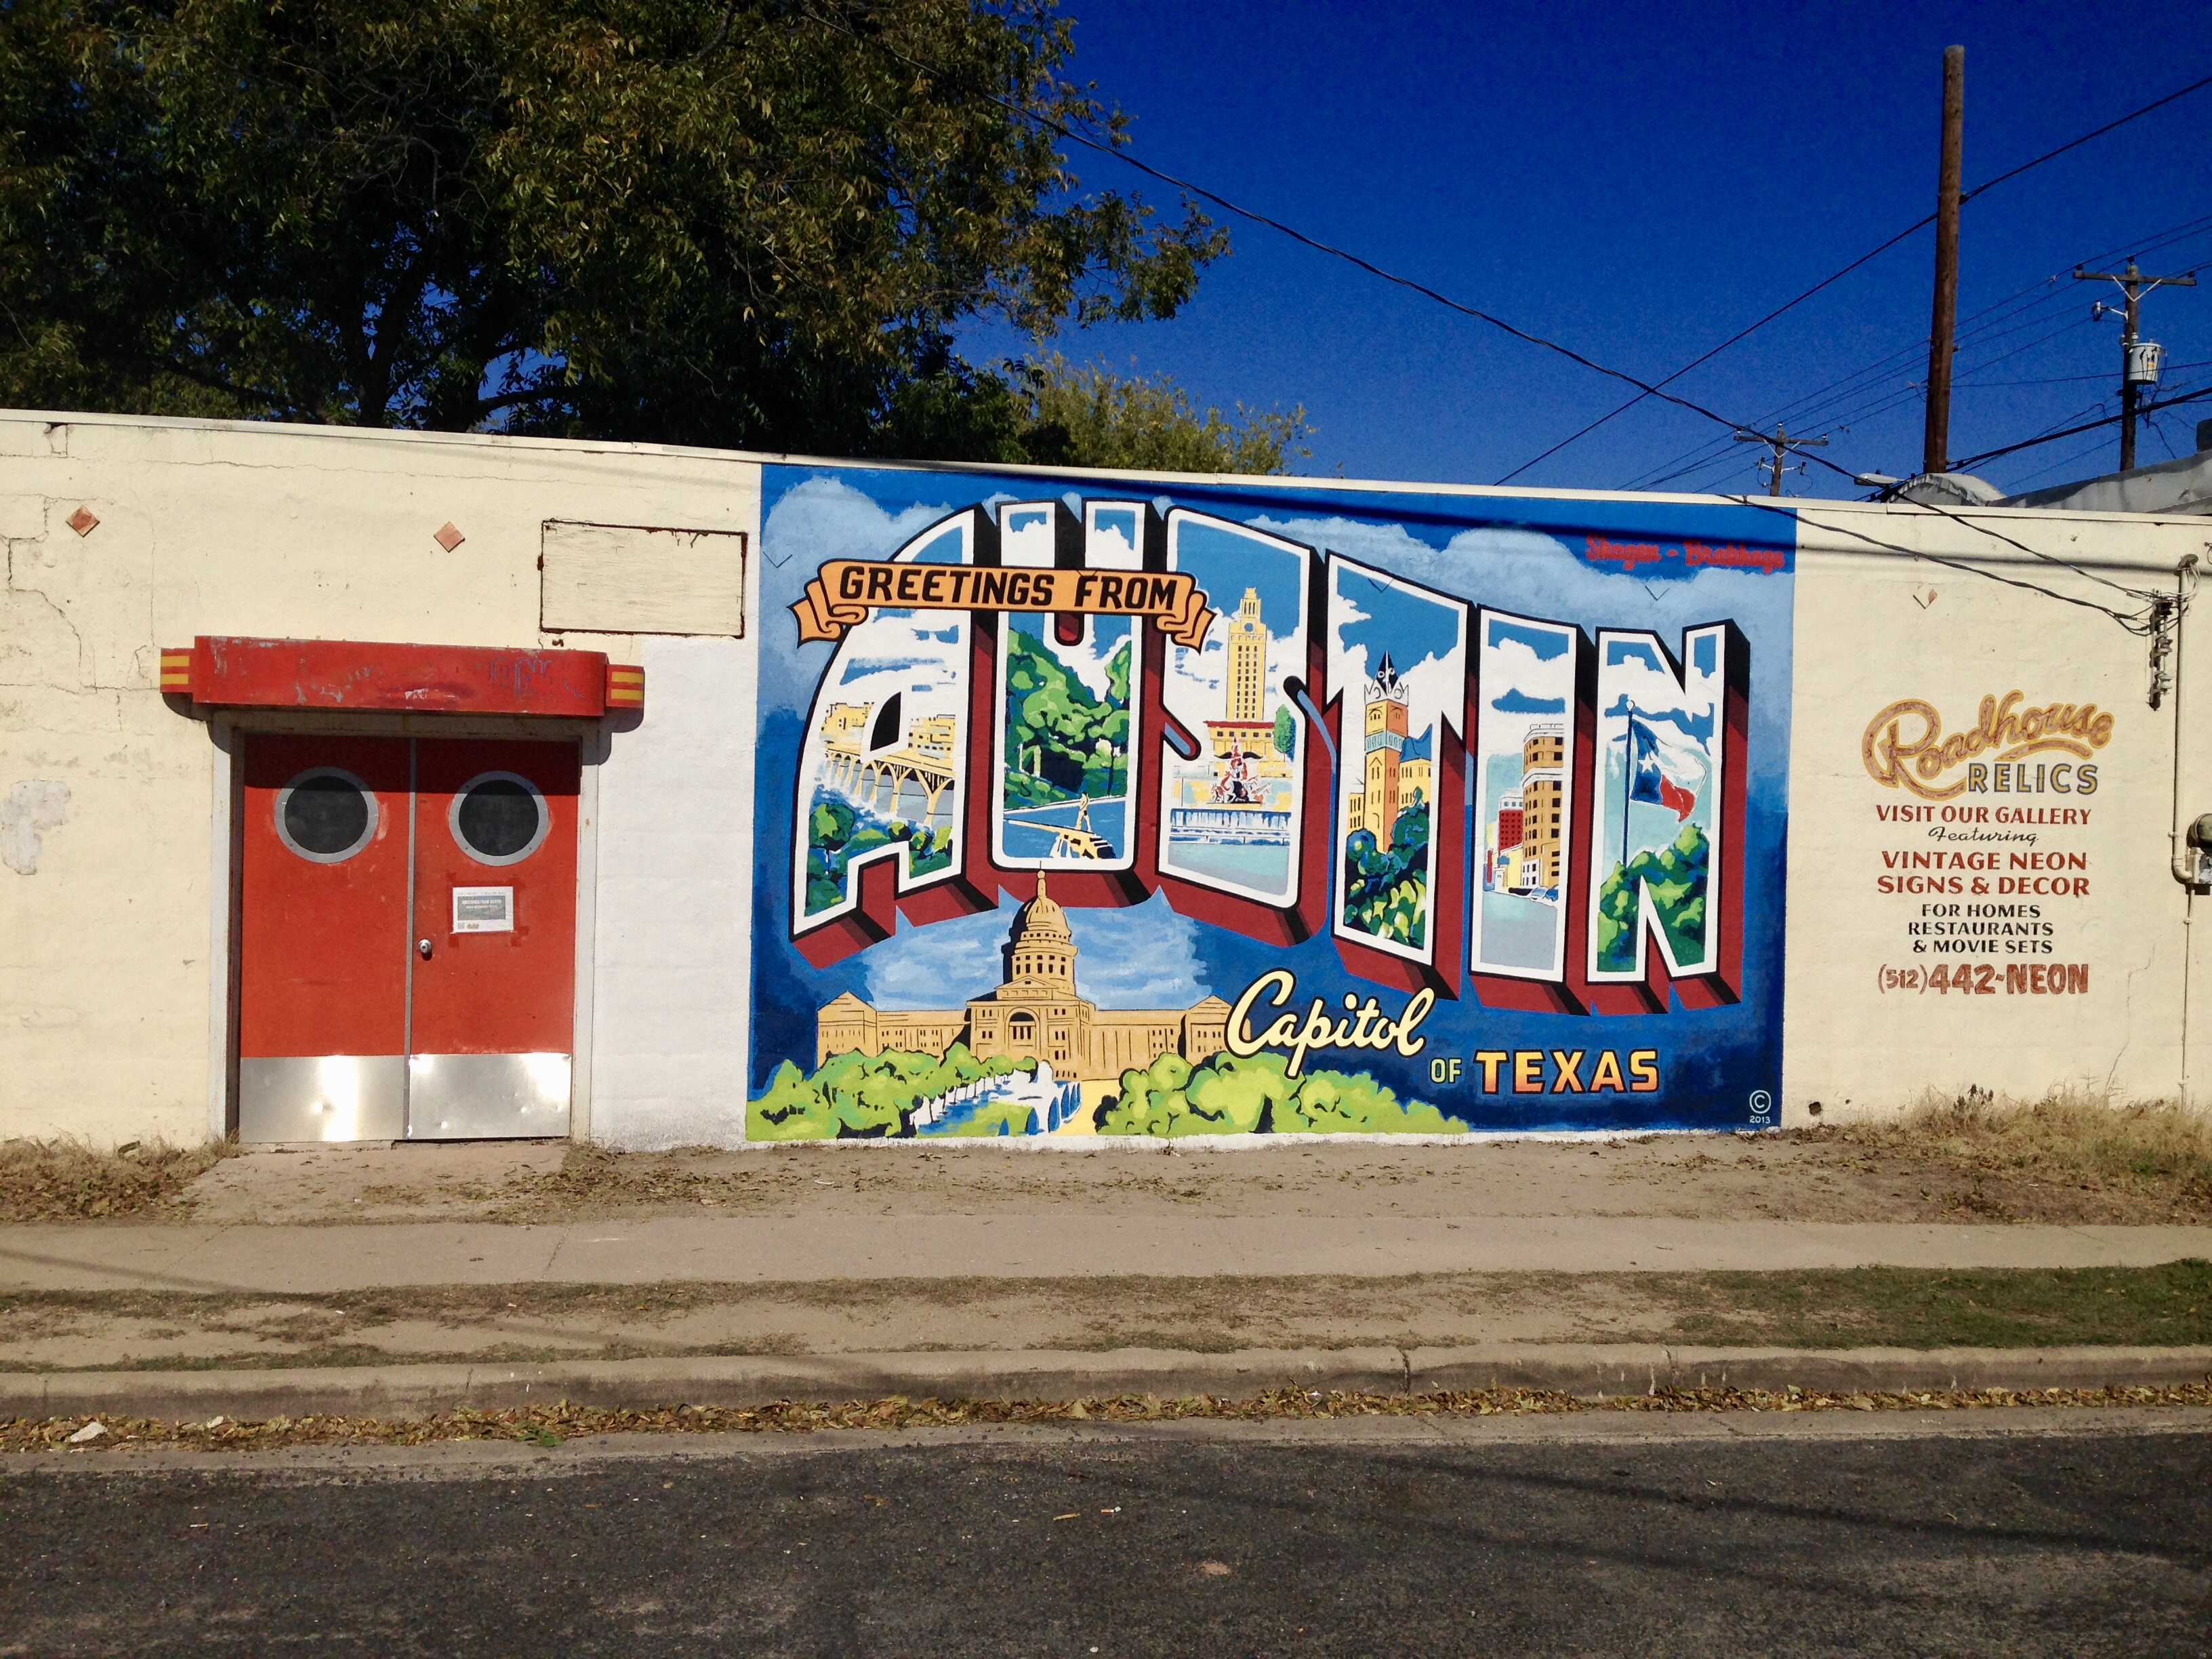 Mural located at Annie & S. 1st Street in Austin, just one of the fun free things to do in Austin.